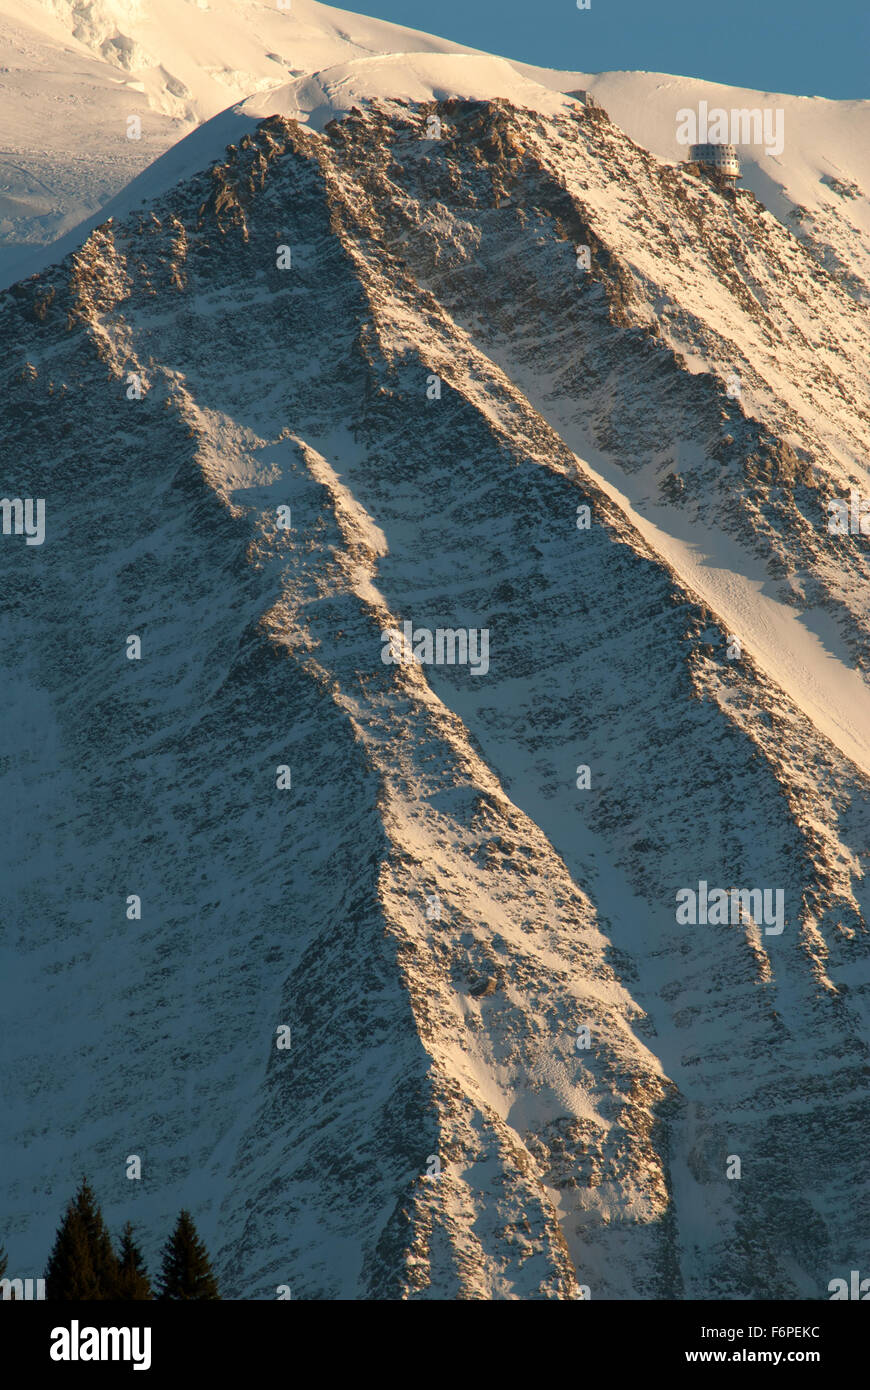 Steep snow dusted slopes of the Aguille de Gouter with the new Gouter mountain refuge glistening in the afternoon - Stock Image